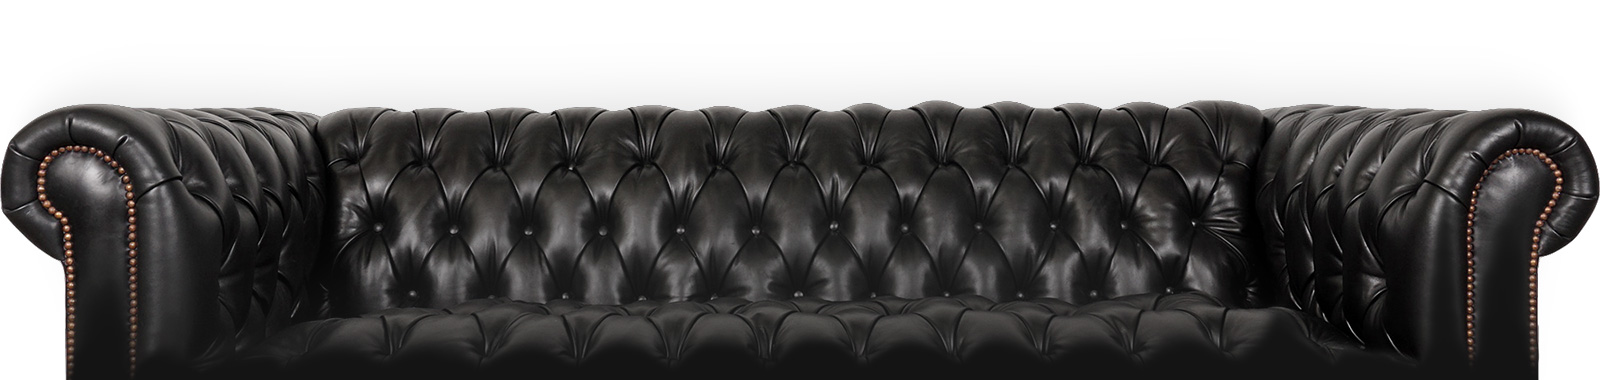 Black couch with metal rivets along arms